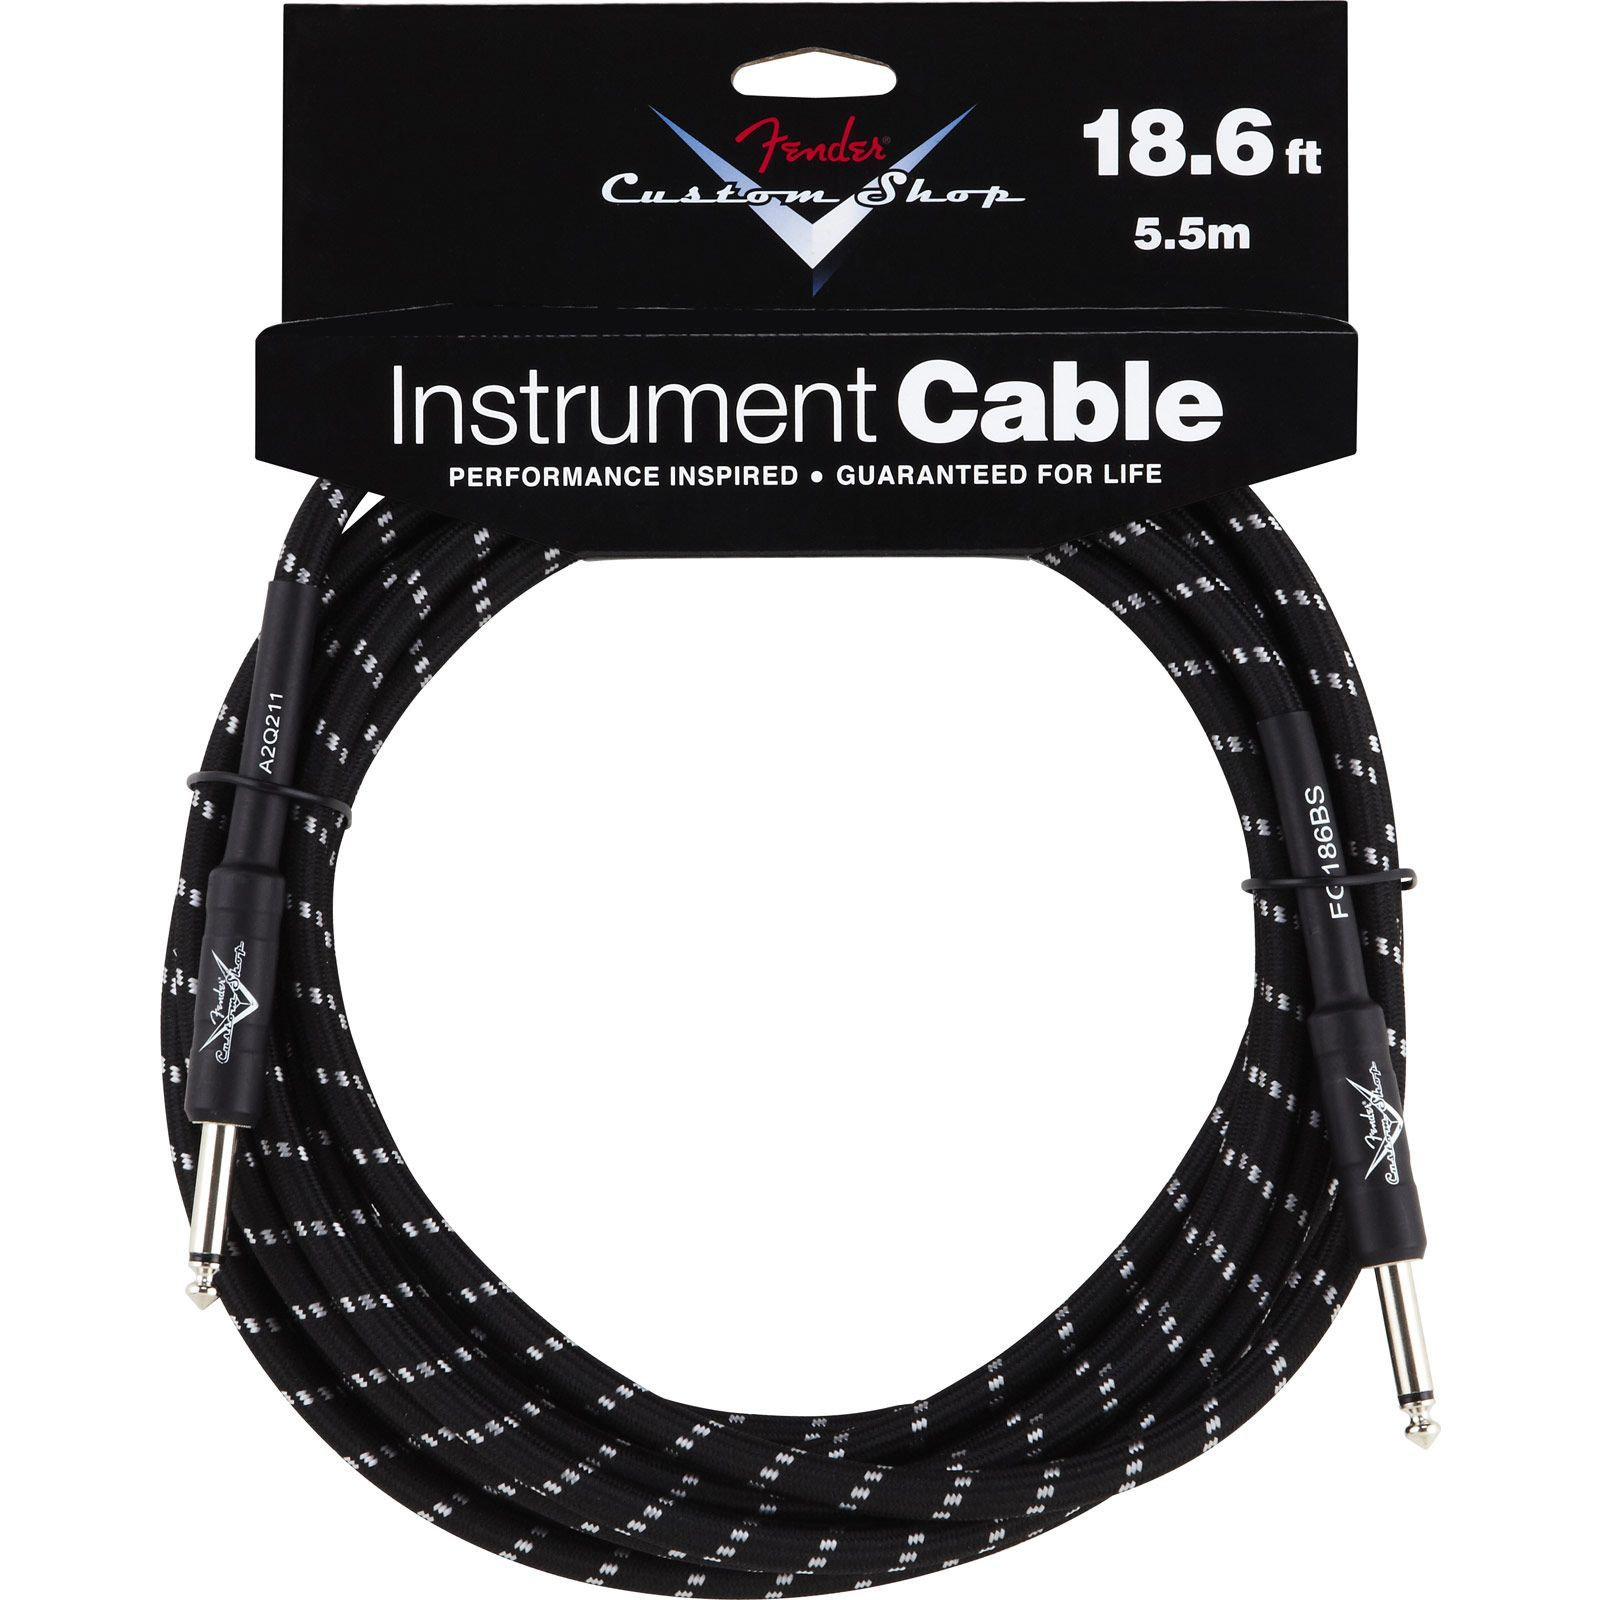 Fender Custom Shop Cable 5.5m BTW Black Tweed, Kli/Kli Produktbillede